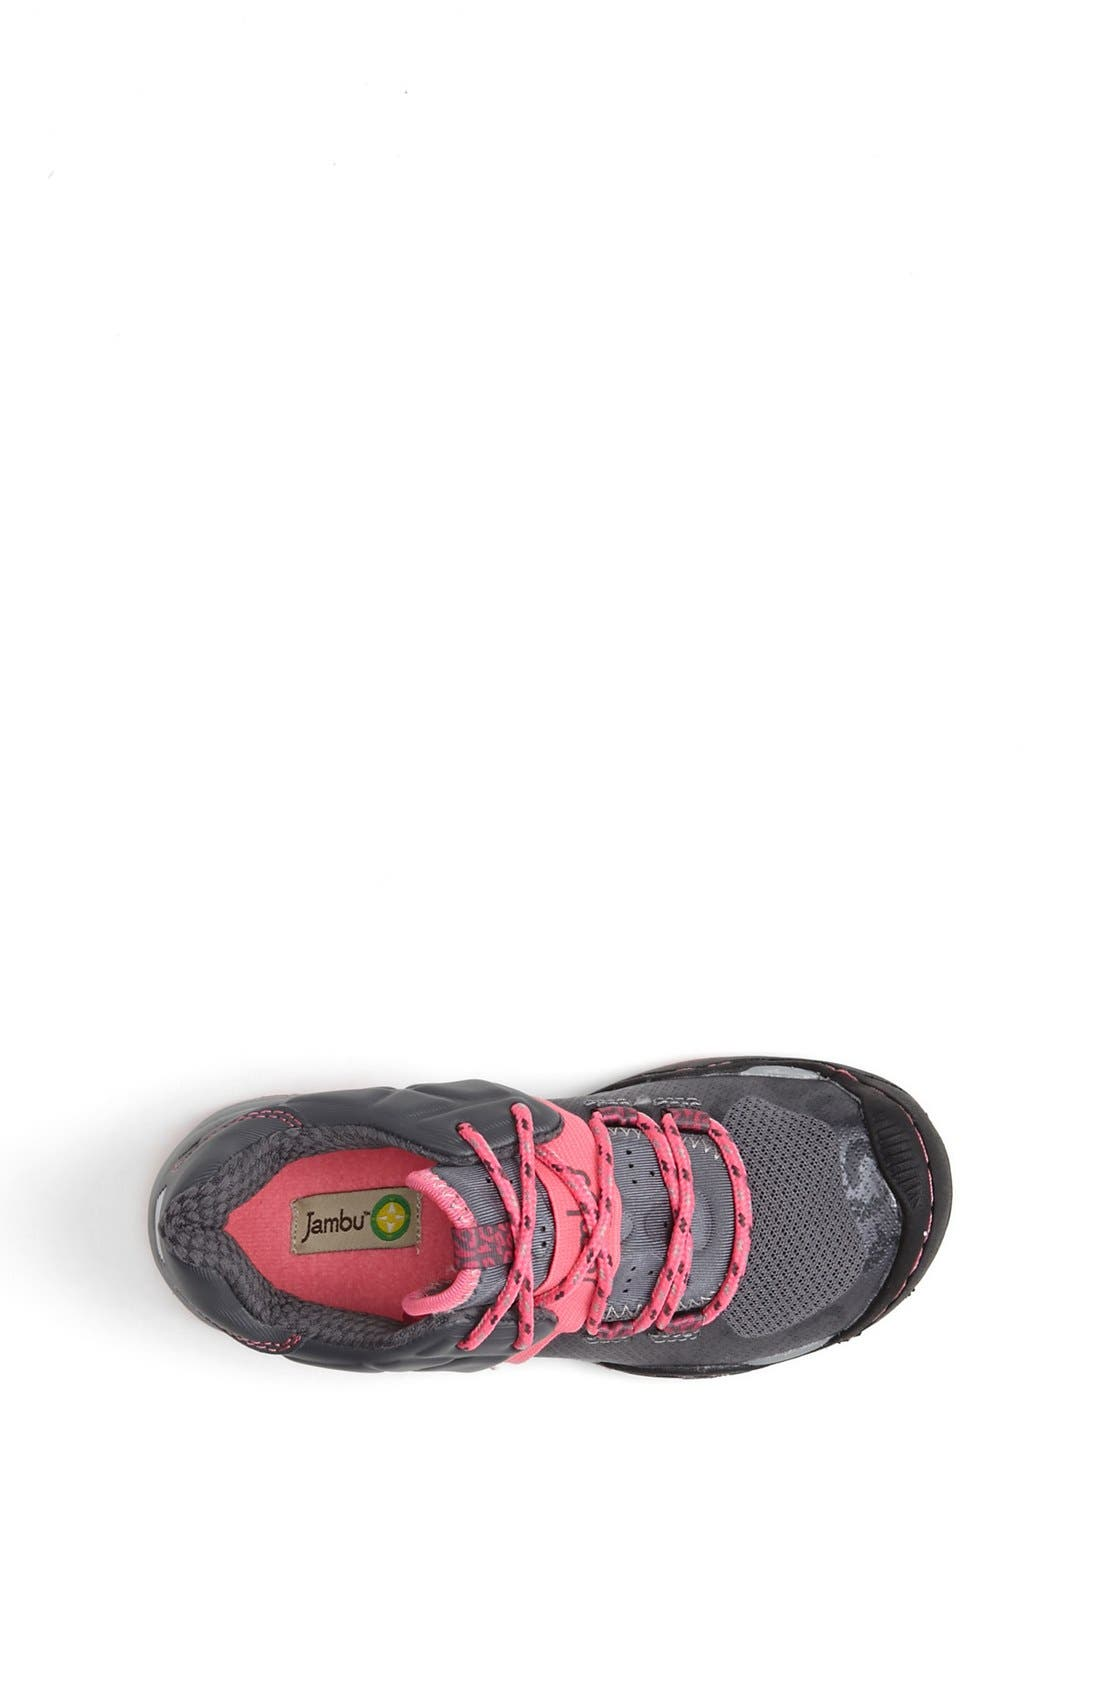 Alternate Image 2  - Jambu 'Agami' Sneaker (Toddler, Little Kid & Big Kid)